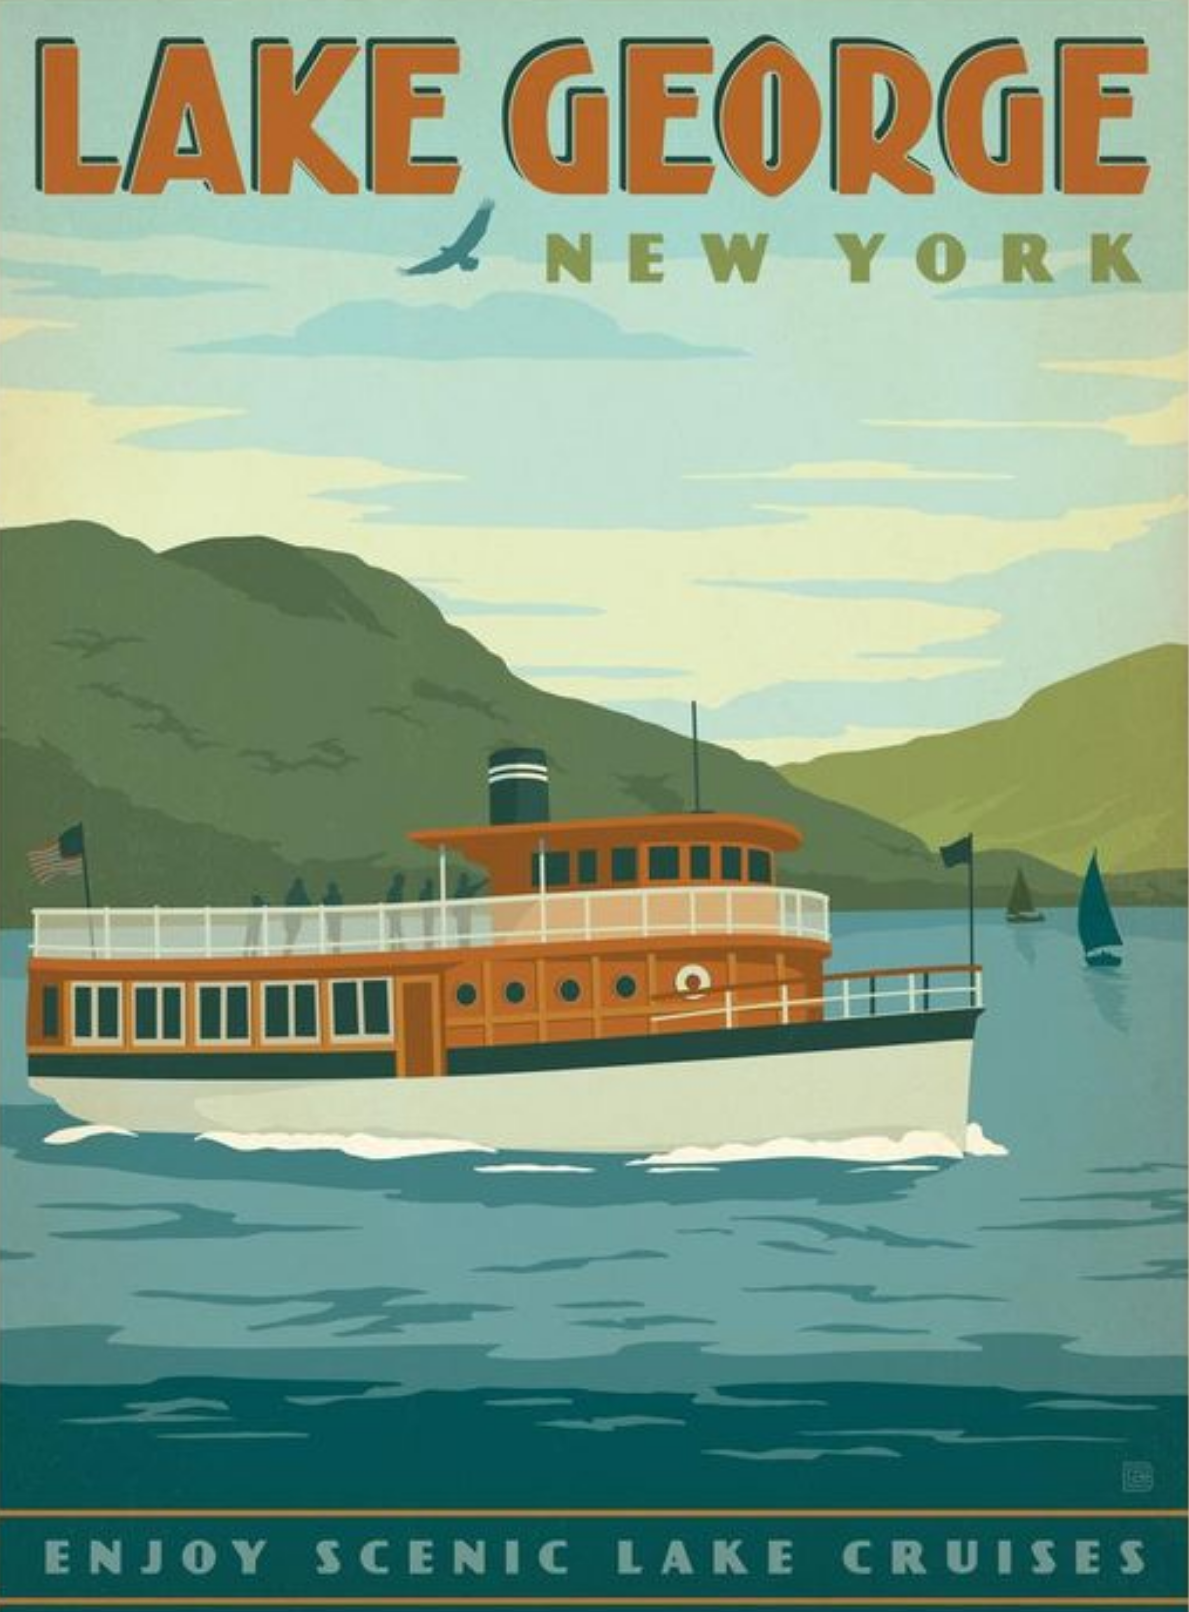 Lake George New York Anderson Design Group Vintage Travel  # Magasins Fly A Colmac